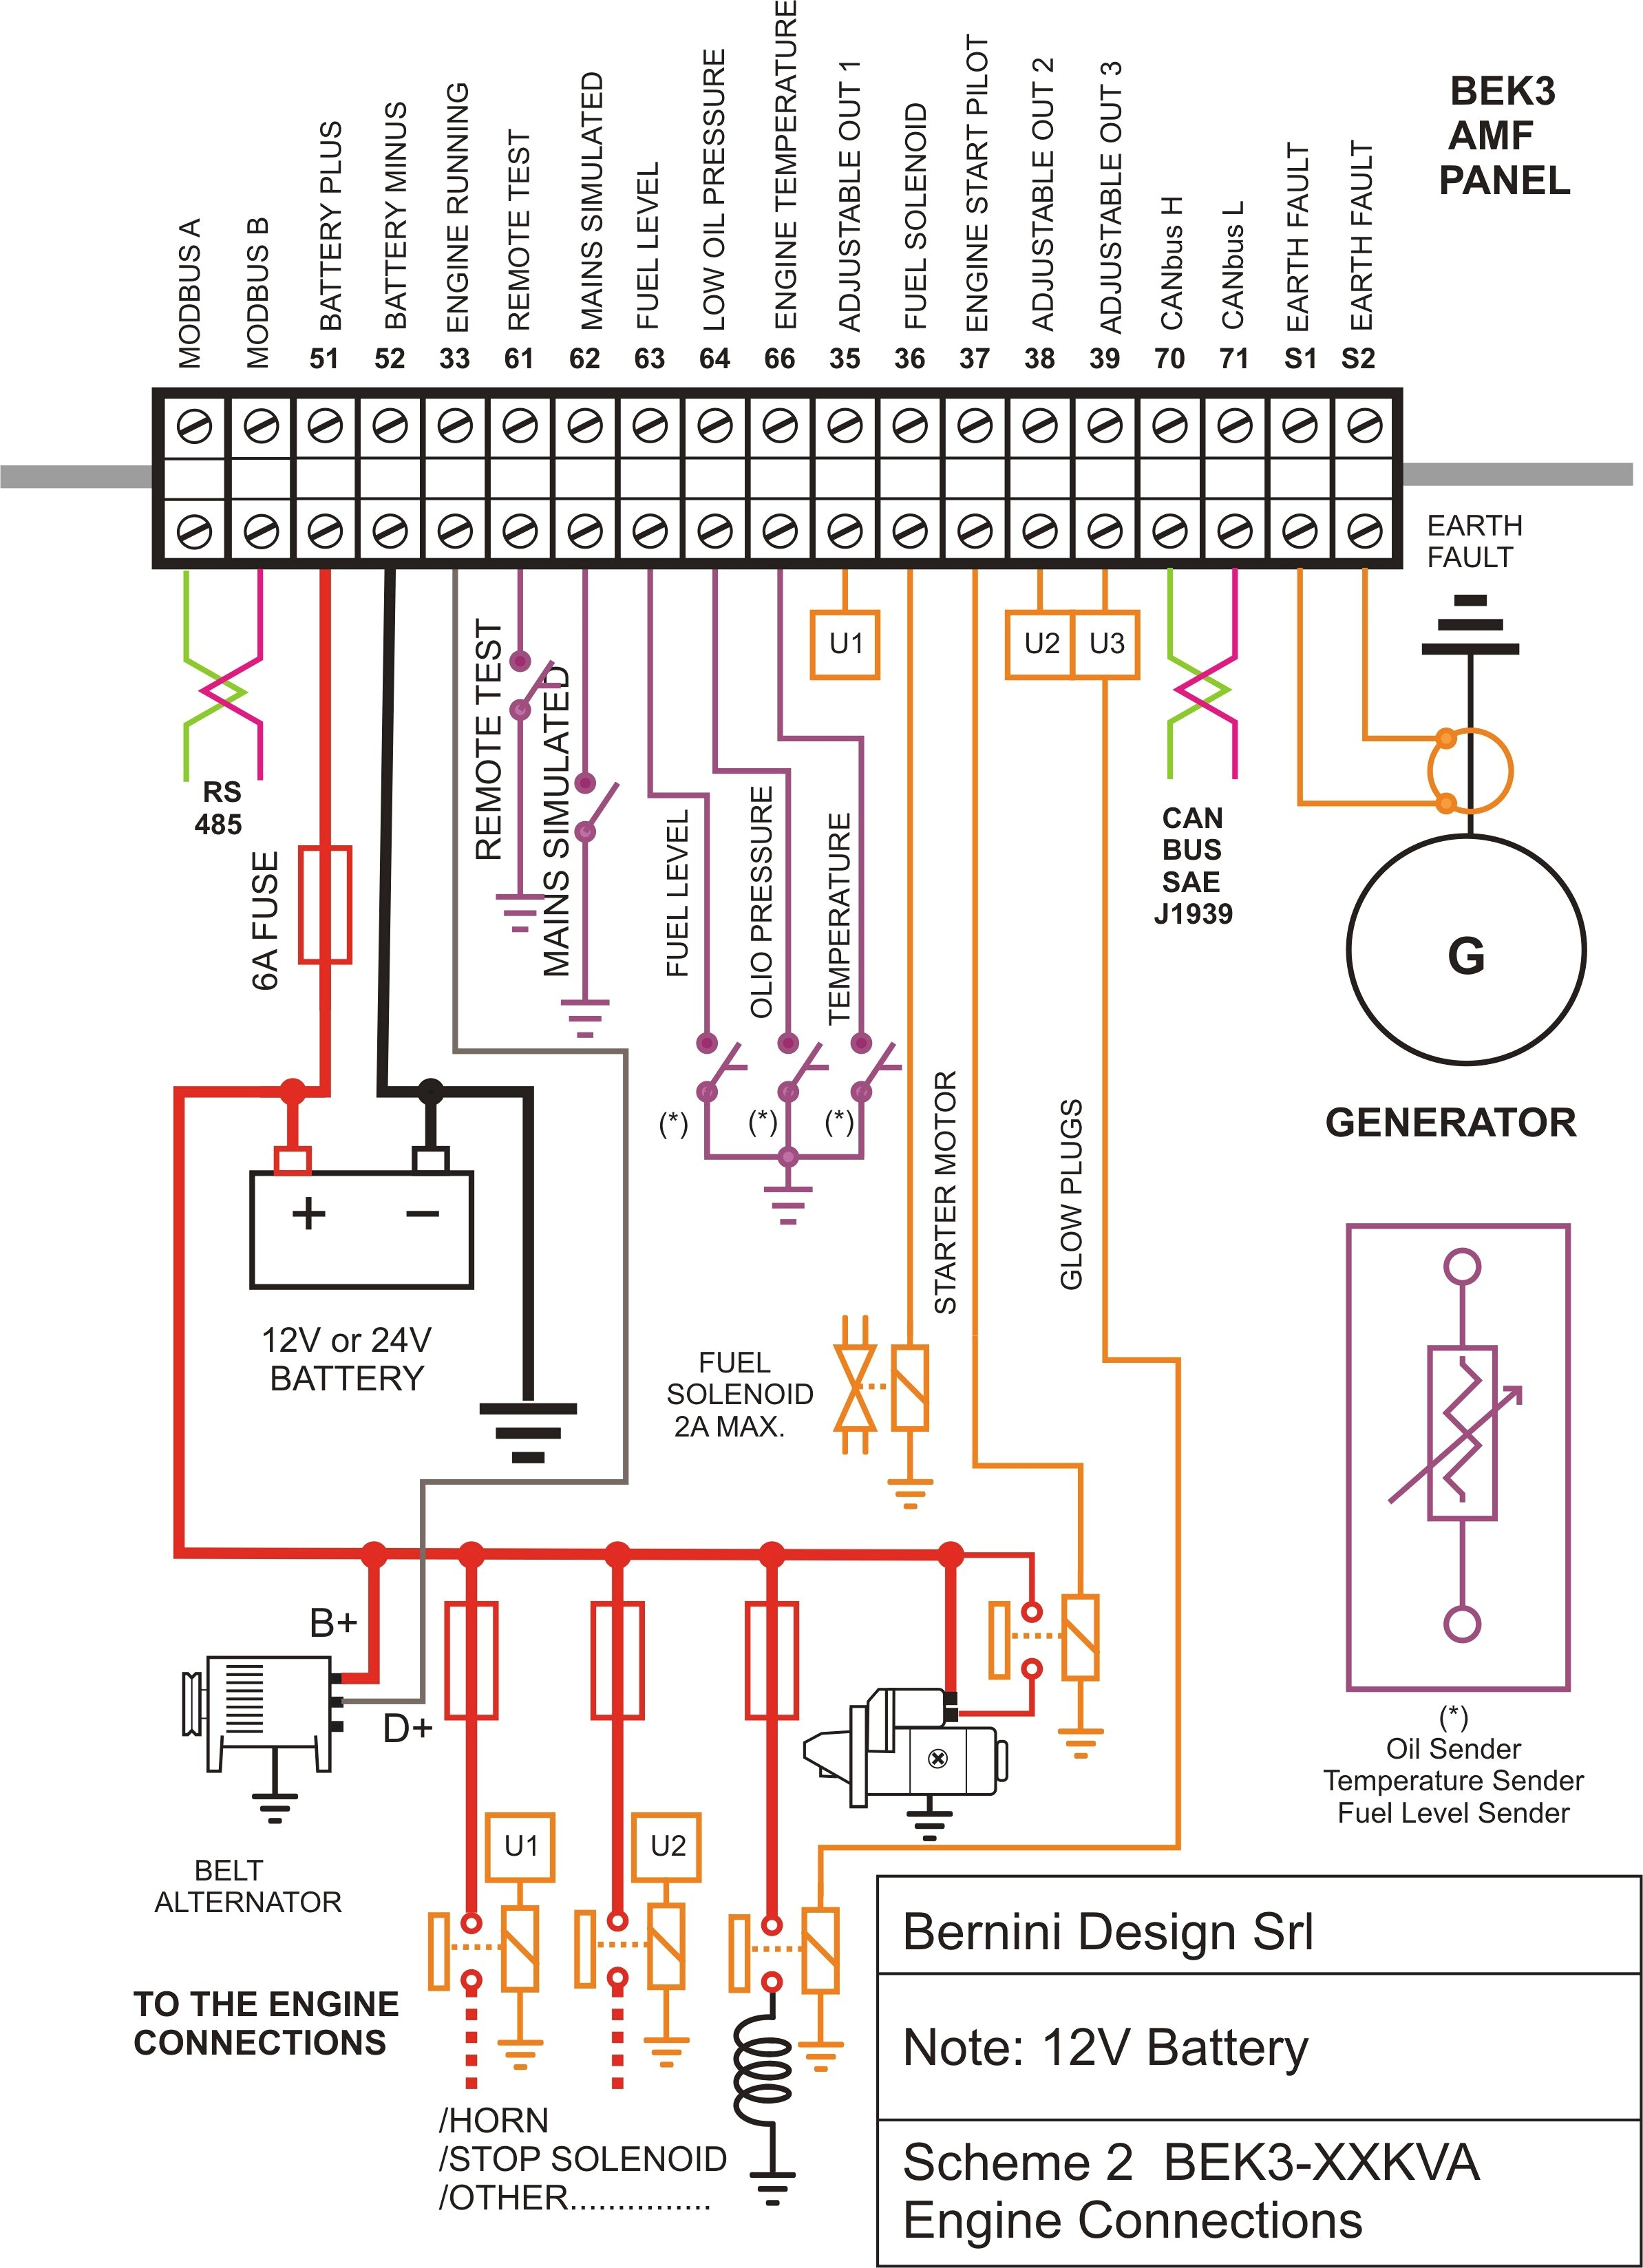 Bass Tracker Fuse Block Diagram - Wiring Diagram Recent wait-grand -  wait-grand.cosavedereanapoli.it | Bass Tracker Boat Wiring Diagram Fuses |  | wait-grand.cosavedereanapoli.it